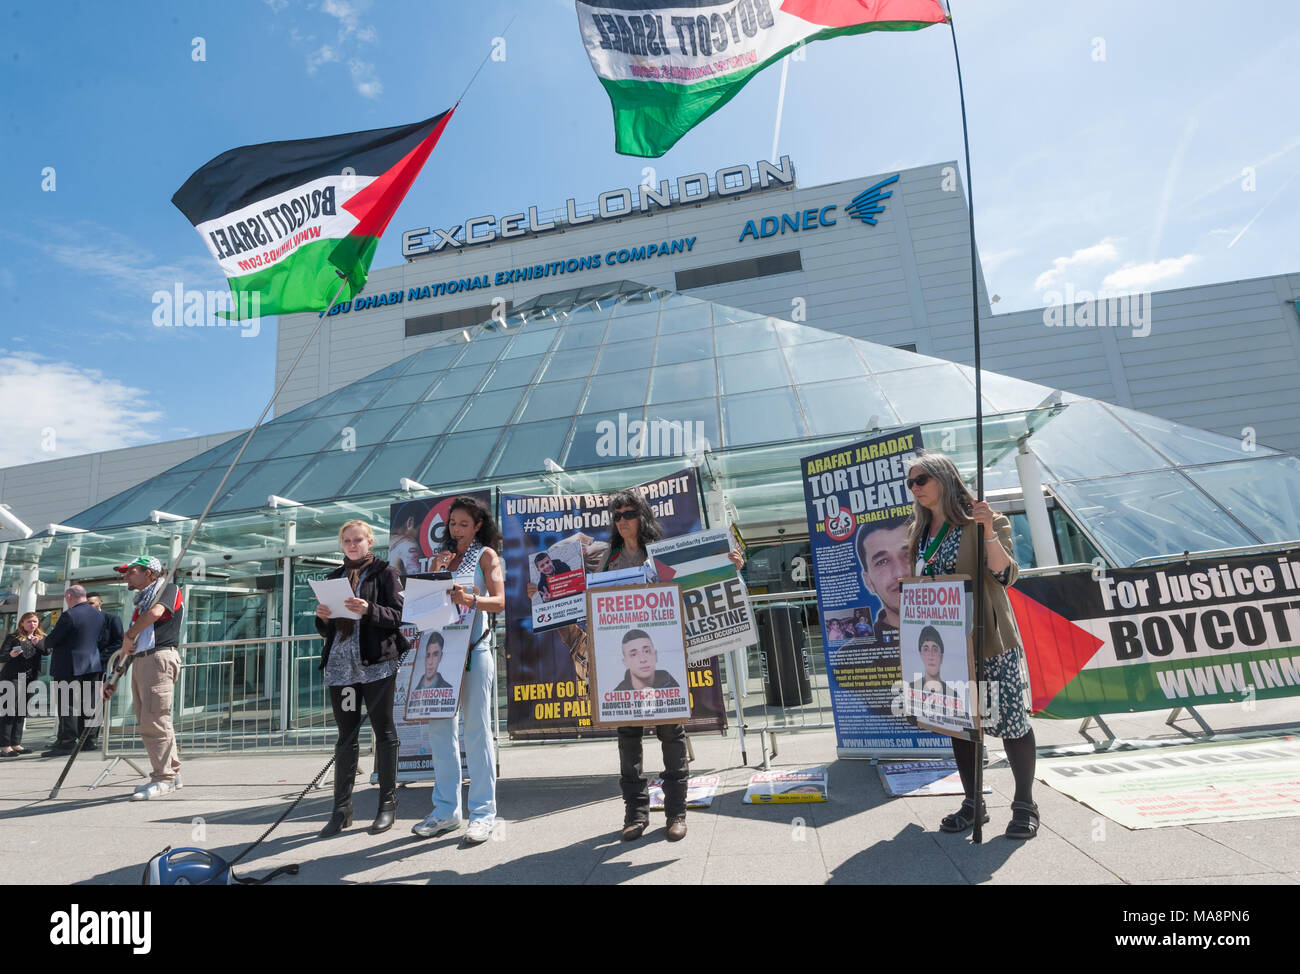 Inminds protesters with 'Boycott Israel' flags give a presentation outside the Excel Centre about human rights abuses by the Israeli government, aided by G4S, at Stop 4S protest outside G4S AGM at Excel London. Stock Photo